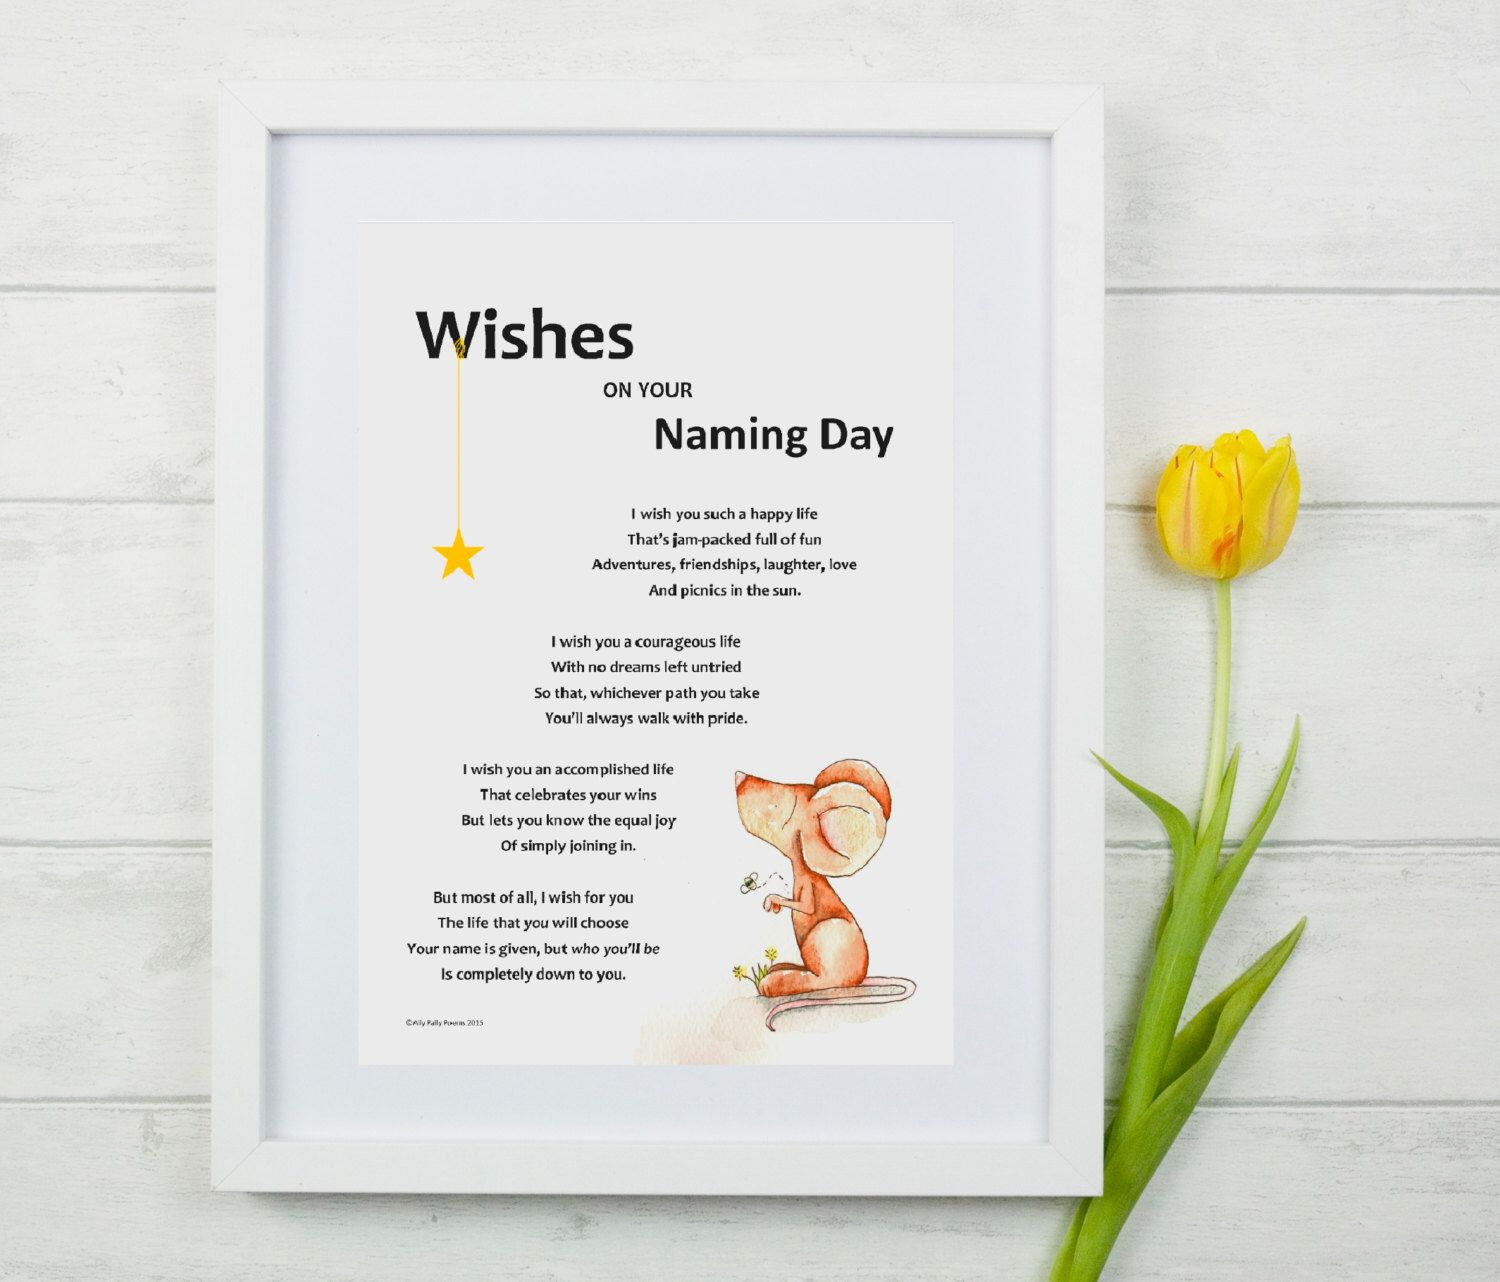 Wishes on your naming day illustrated poem for naming ceremony new wishes on your naming day illustrated poem for naming ceremony new baby gift kristyandbryce Images